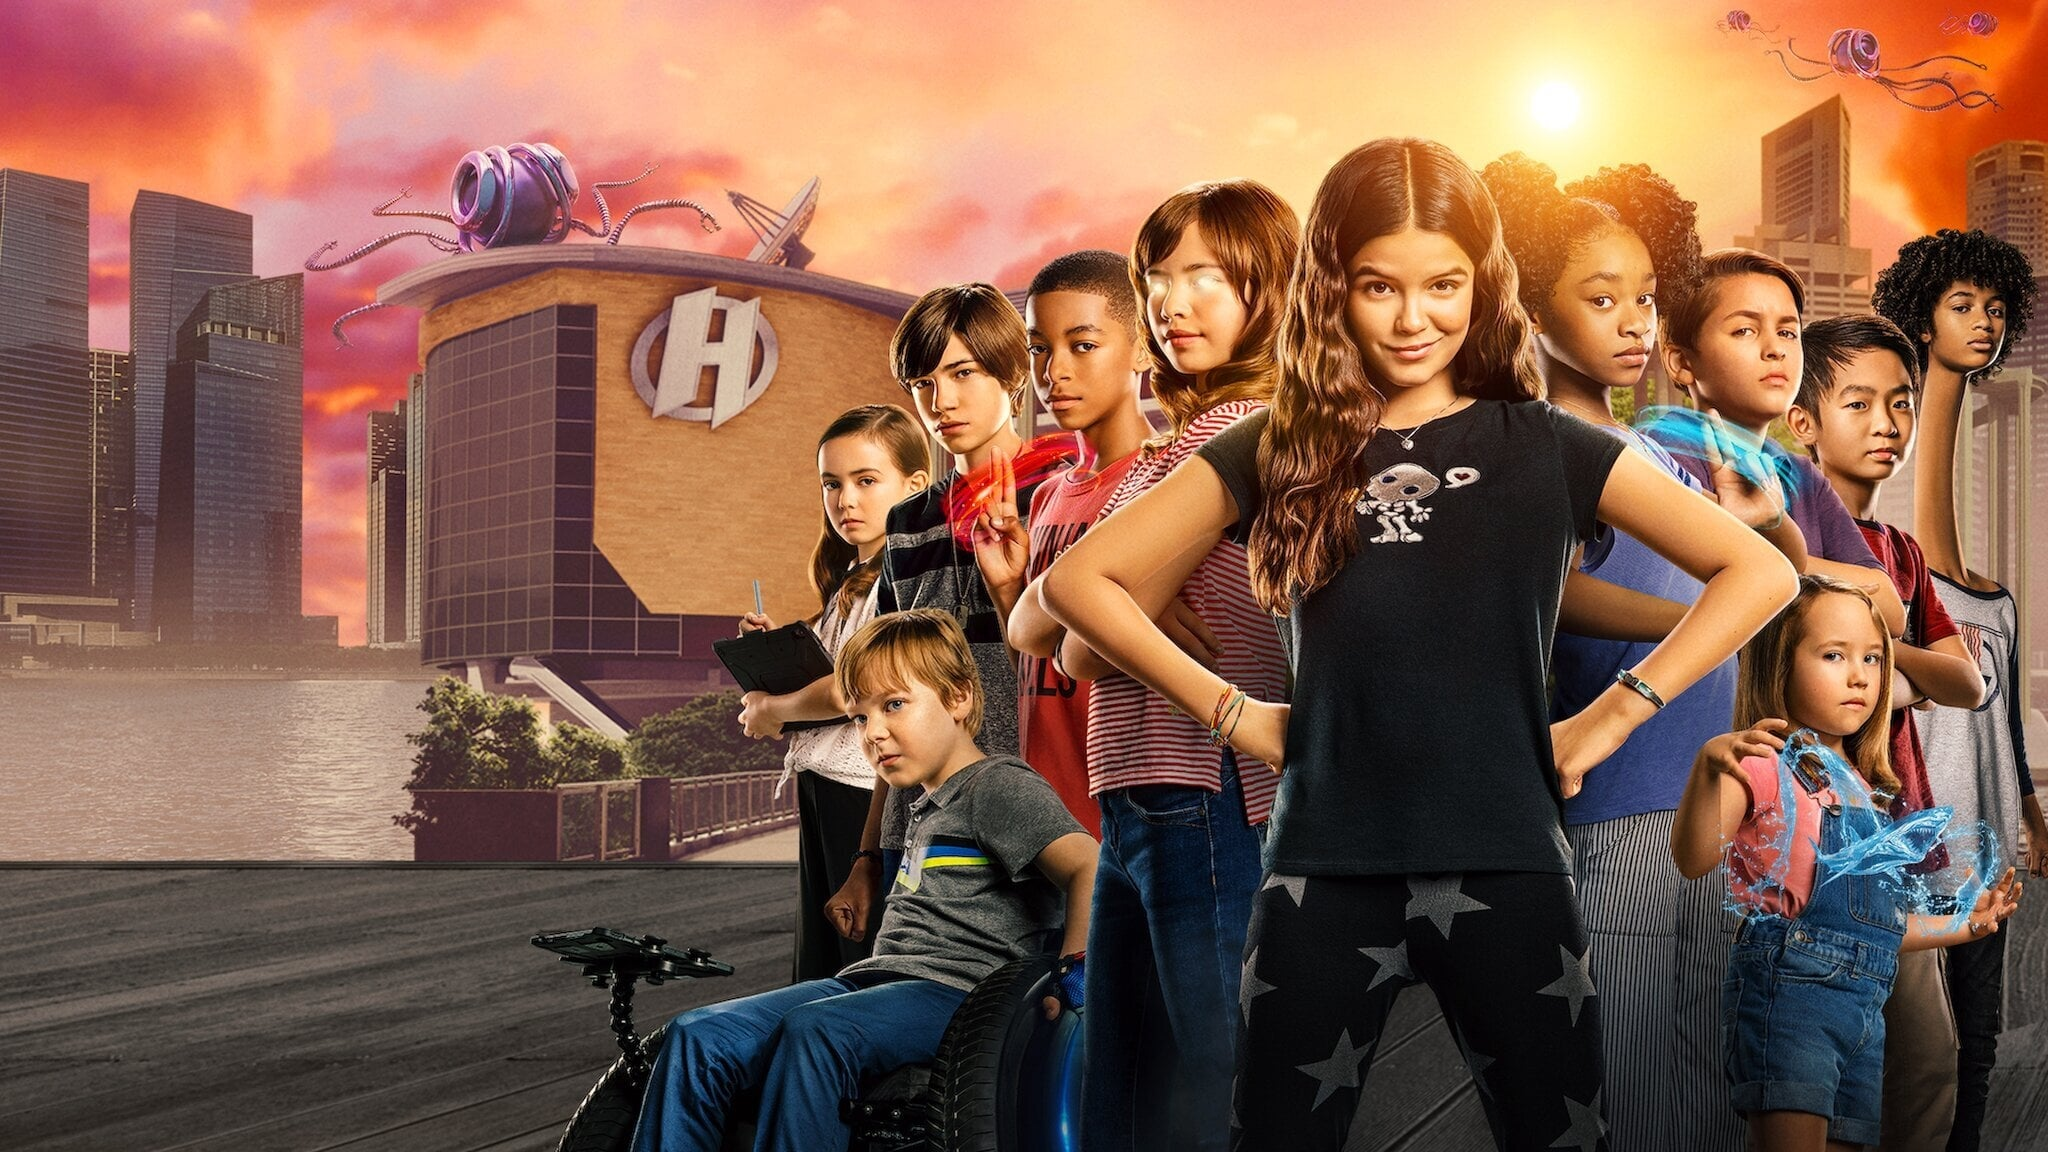 We Can Be Heroes - Superheroes Can Be in Family Movies